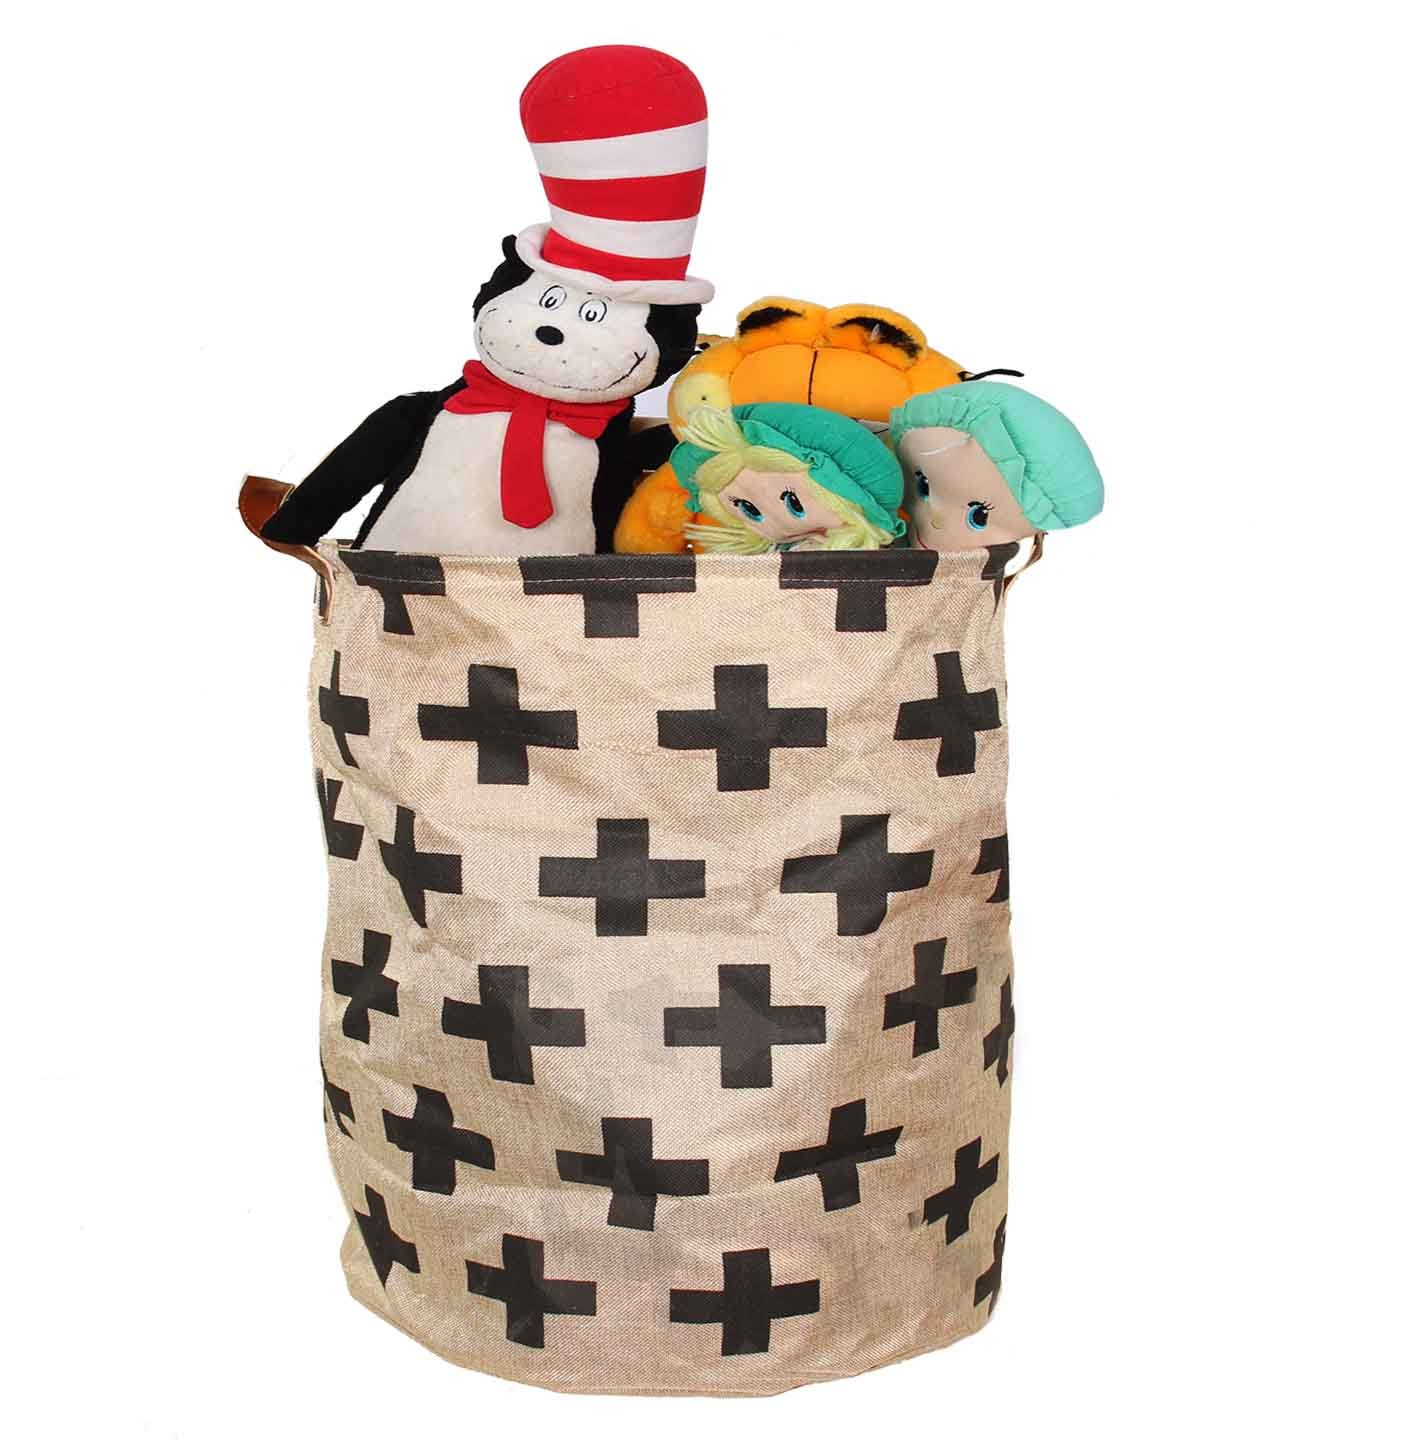 Toy Storage Bin Perfect for Toys Clothes or Laundry leather Carry handles cotton plus sign design where organazation and style meets 22 by 16 inch By Decor Hut